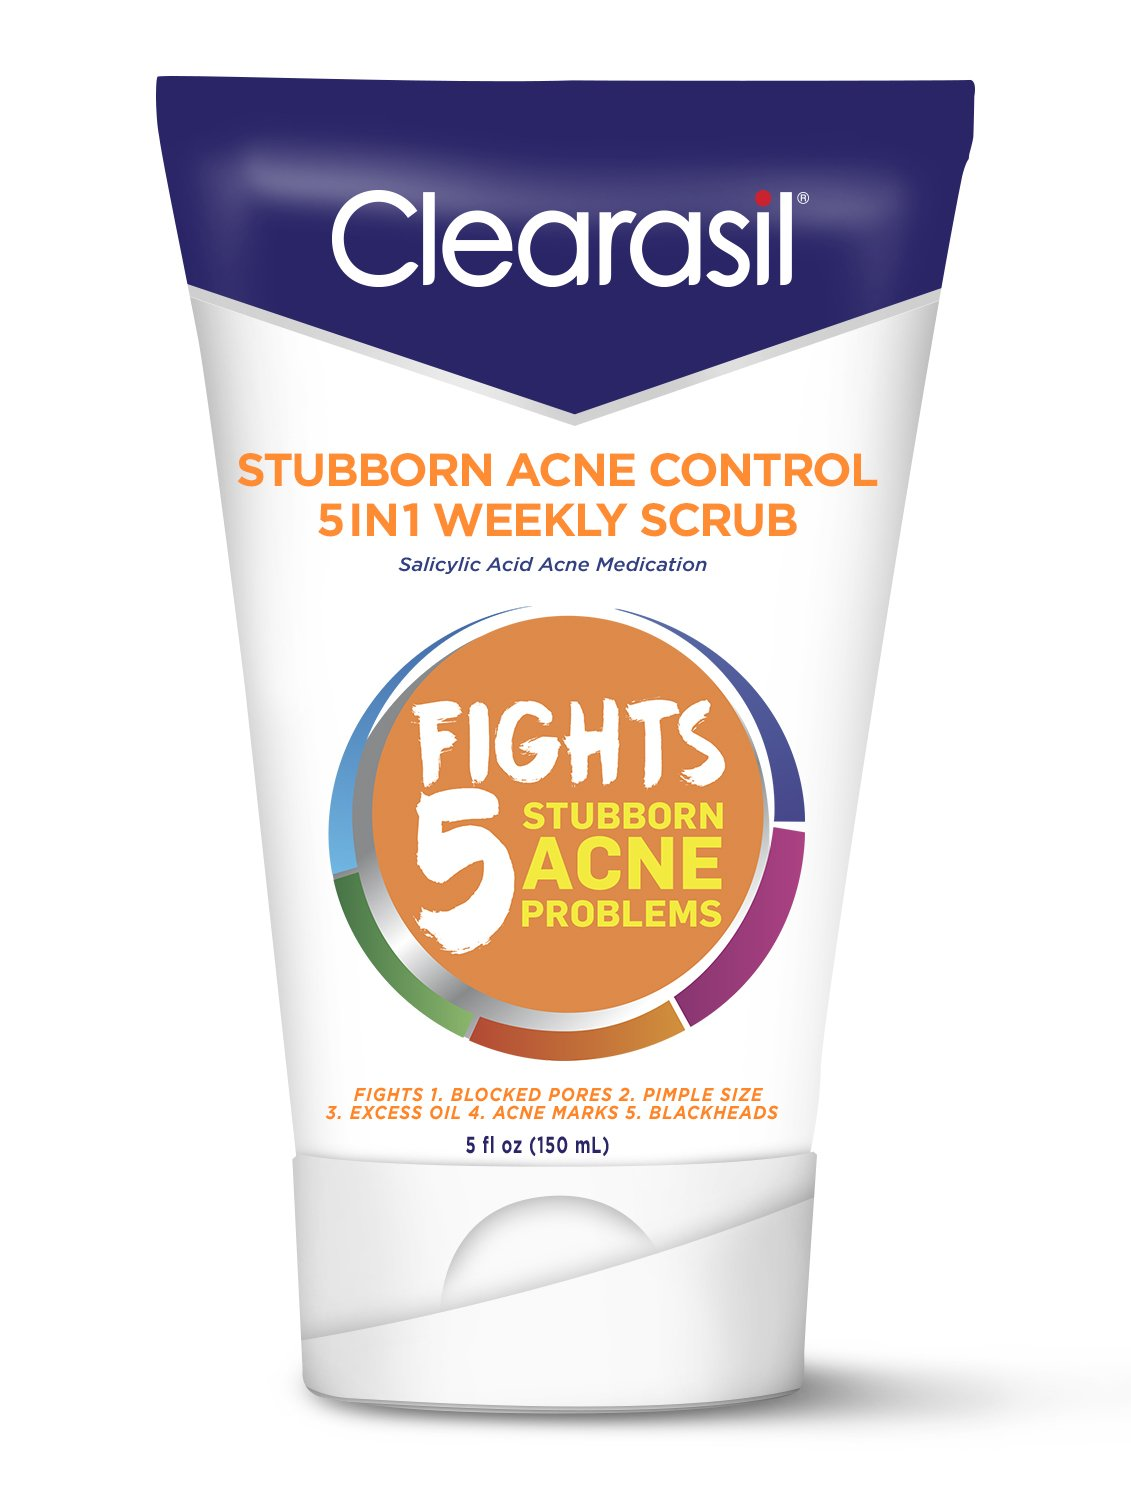 Clearasil Stubborn Acne Control 5in1 Weekly Scrub, 5 oz. (Packaging may vary)